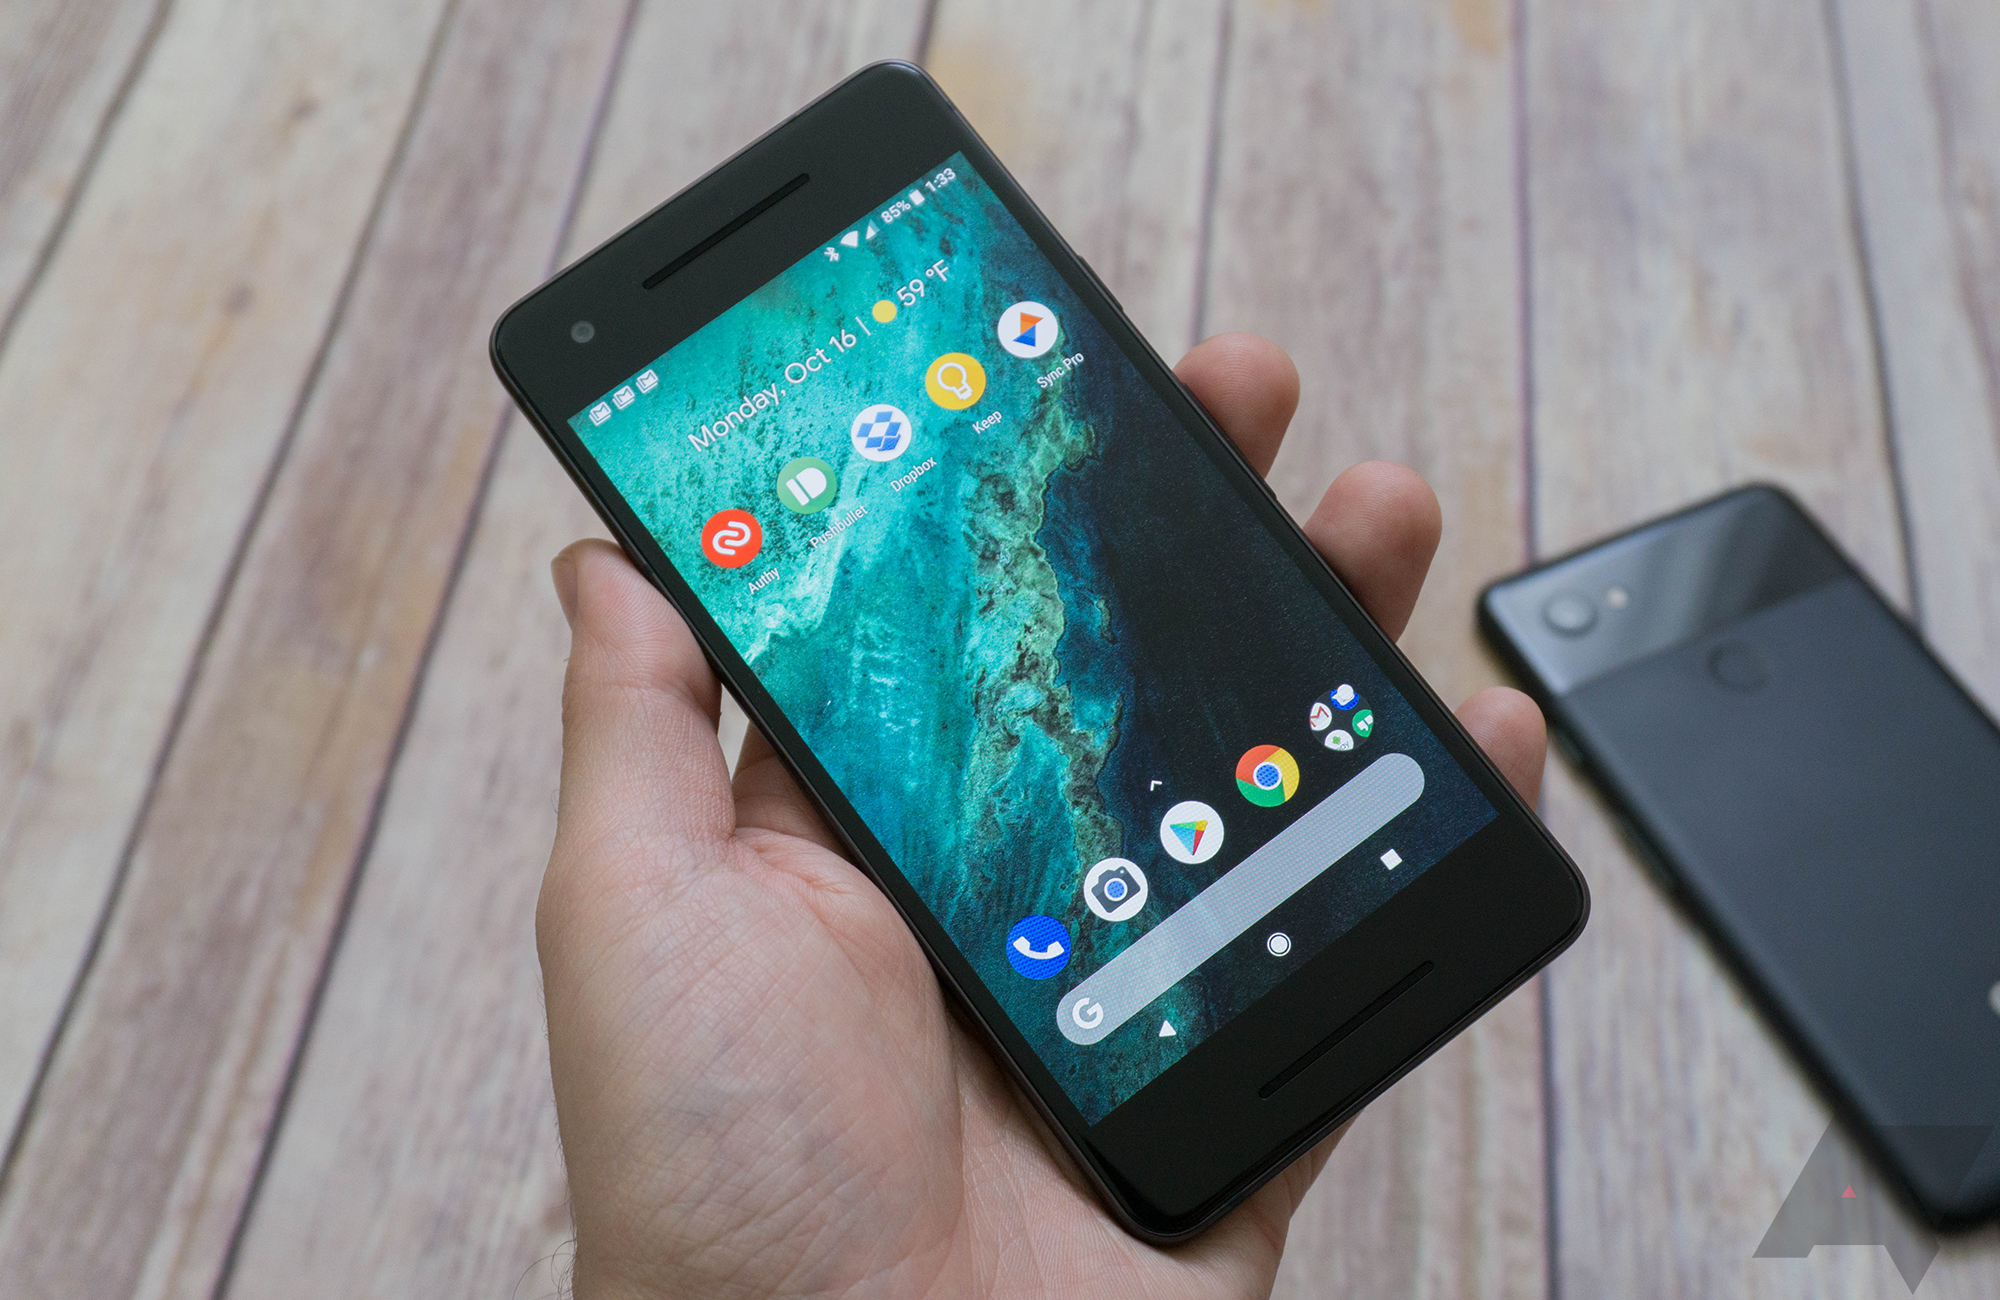 Bootloader unlocking appears to be disabled on some Pixel 2